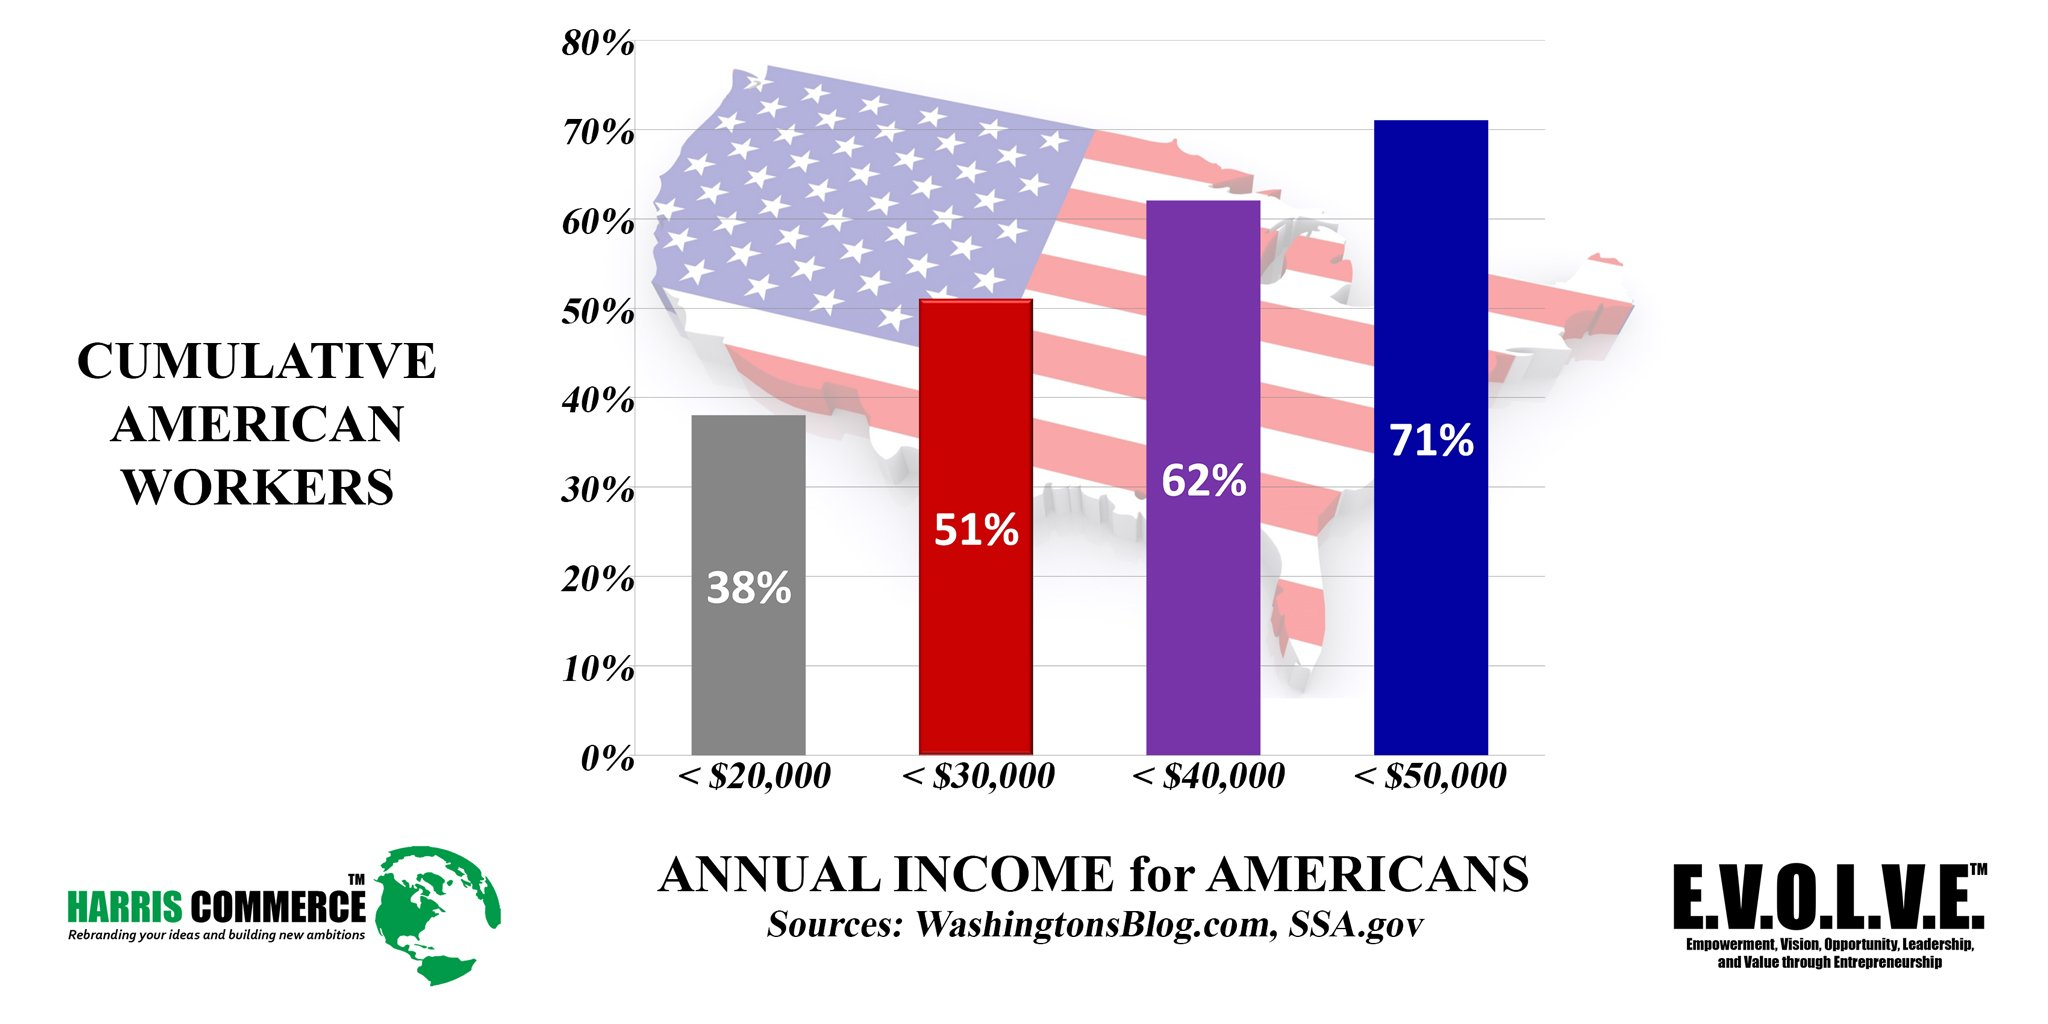 Annual Income for Americans